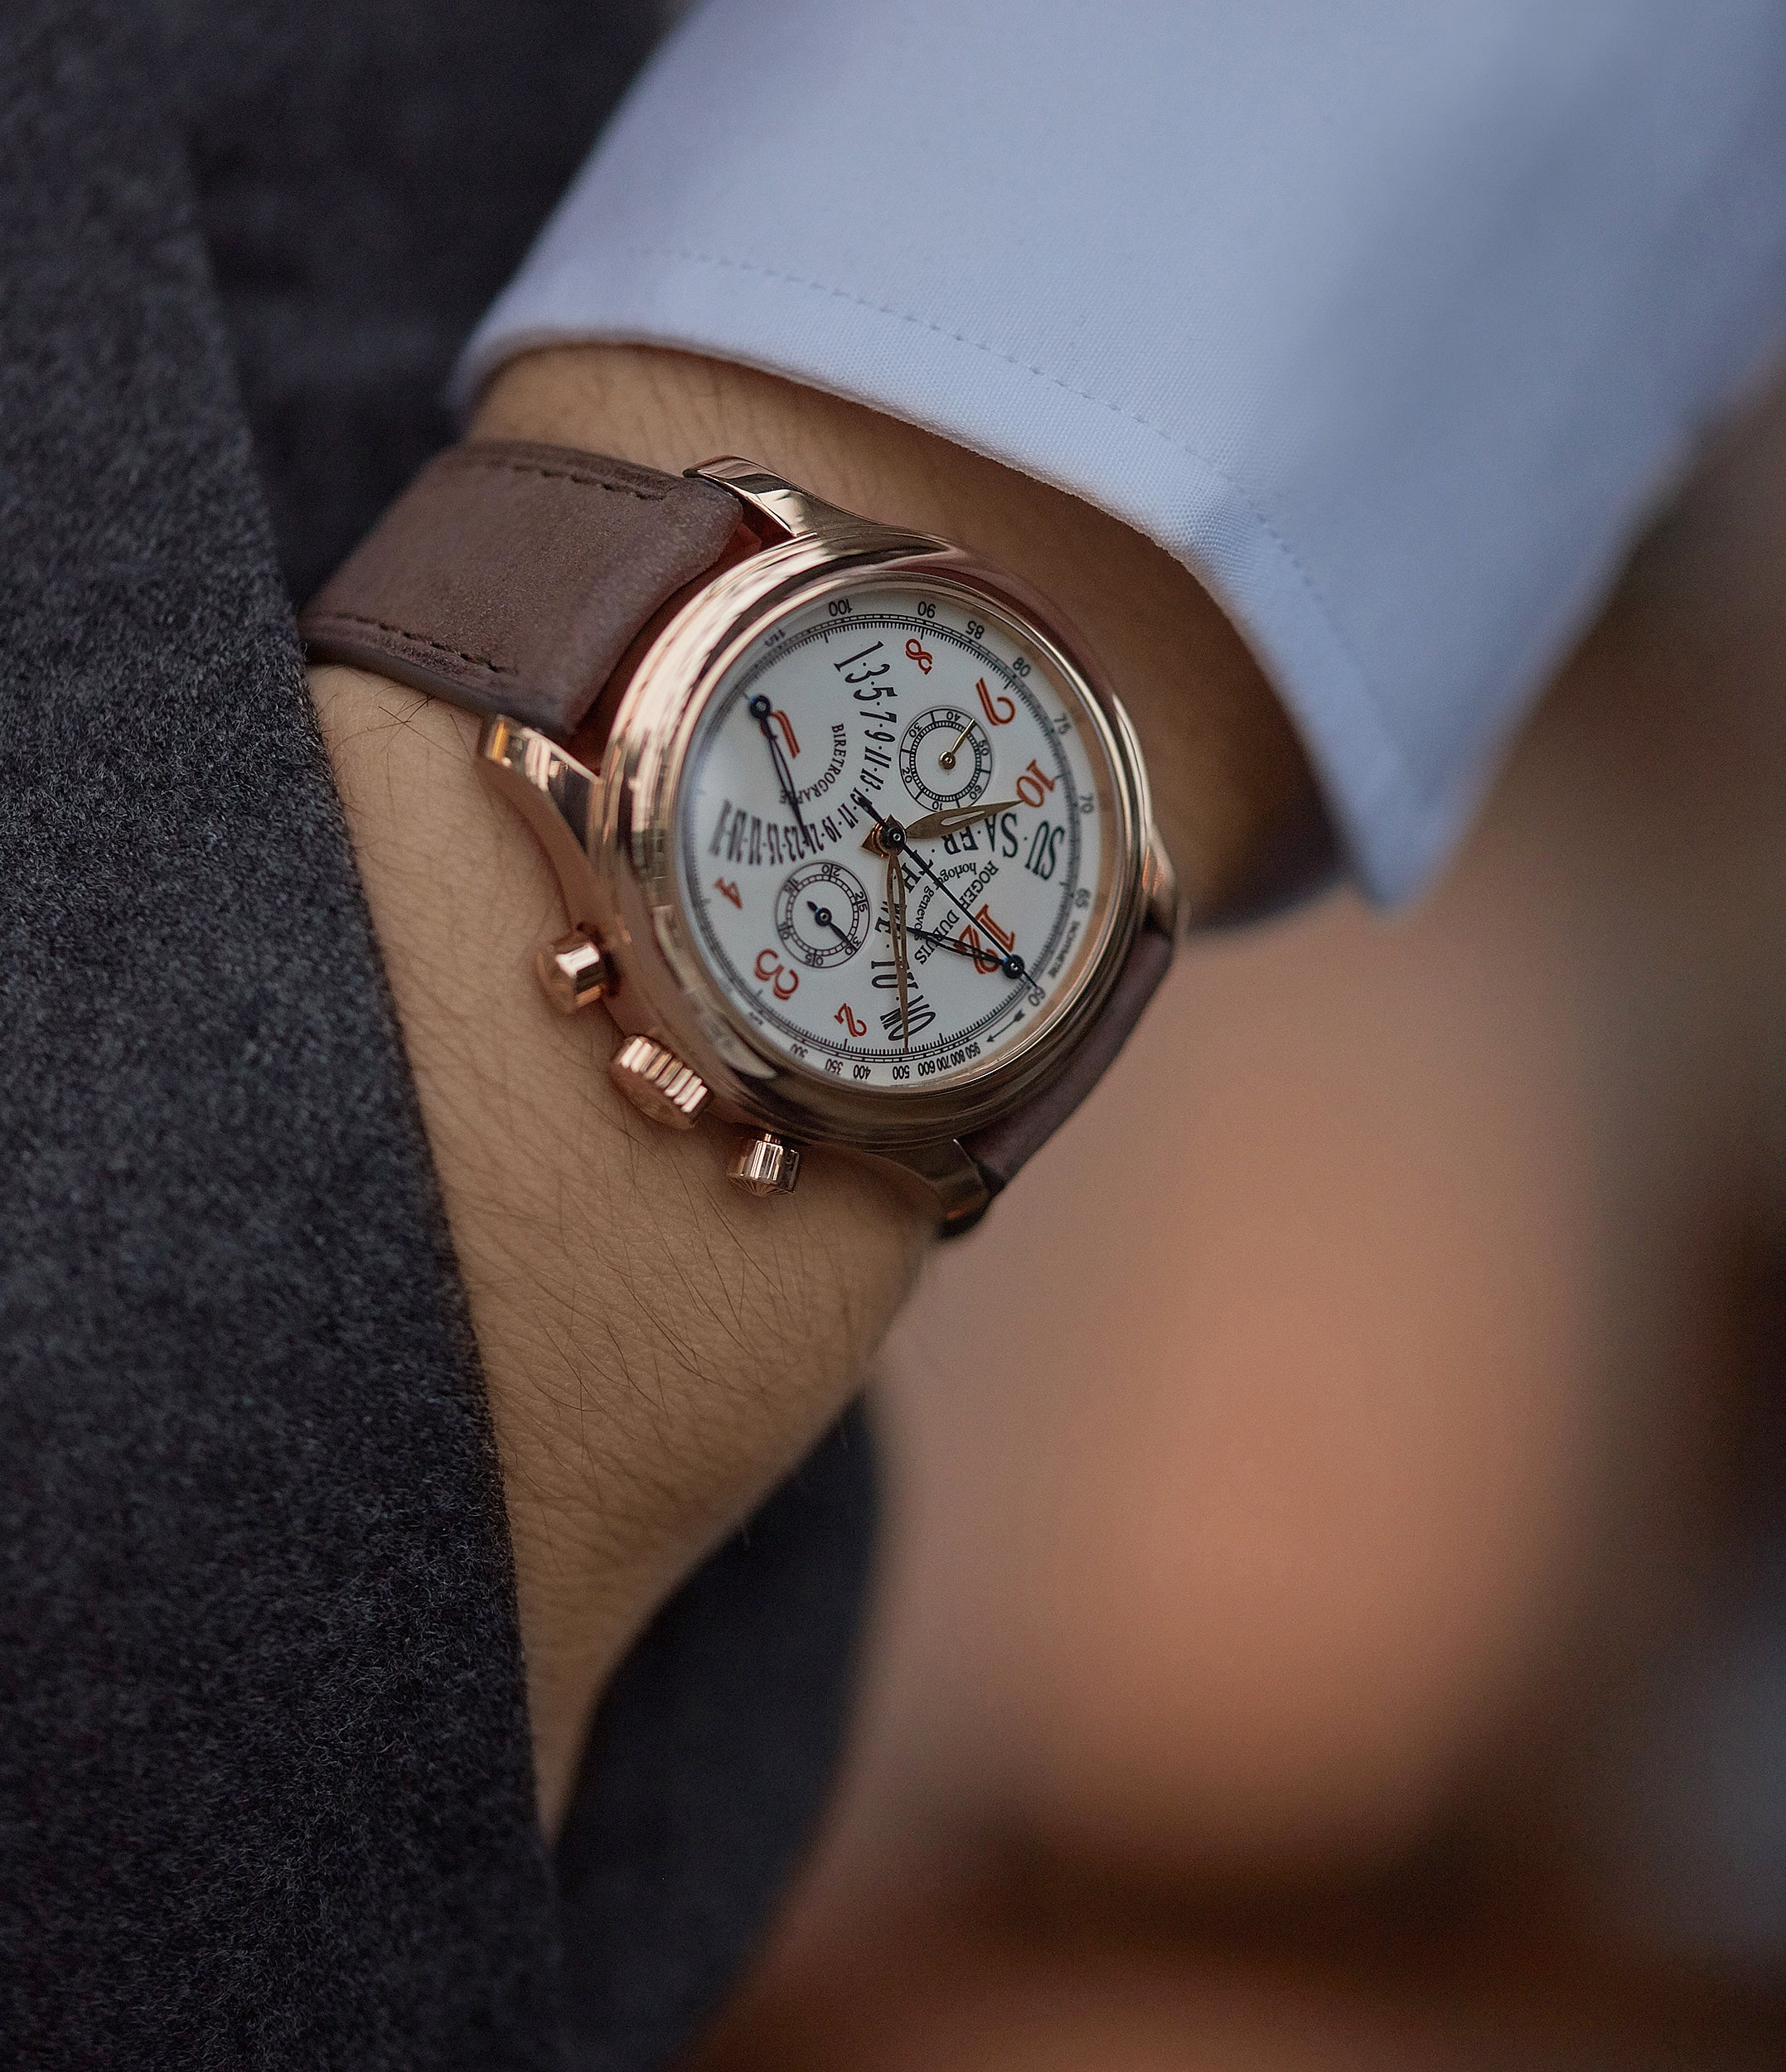 on the wrist Roger Dubuis Hommage bi-retrograde Chronograph H40 560 limited edition rare rose gold lacquer dial watch for sale online at A Collected Man London UK specialist of rare watches